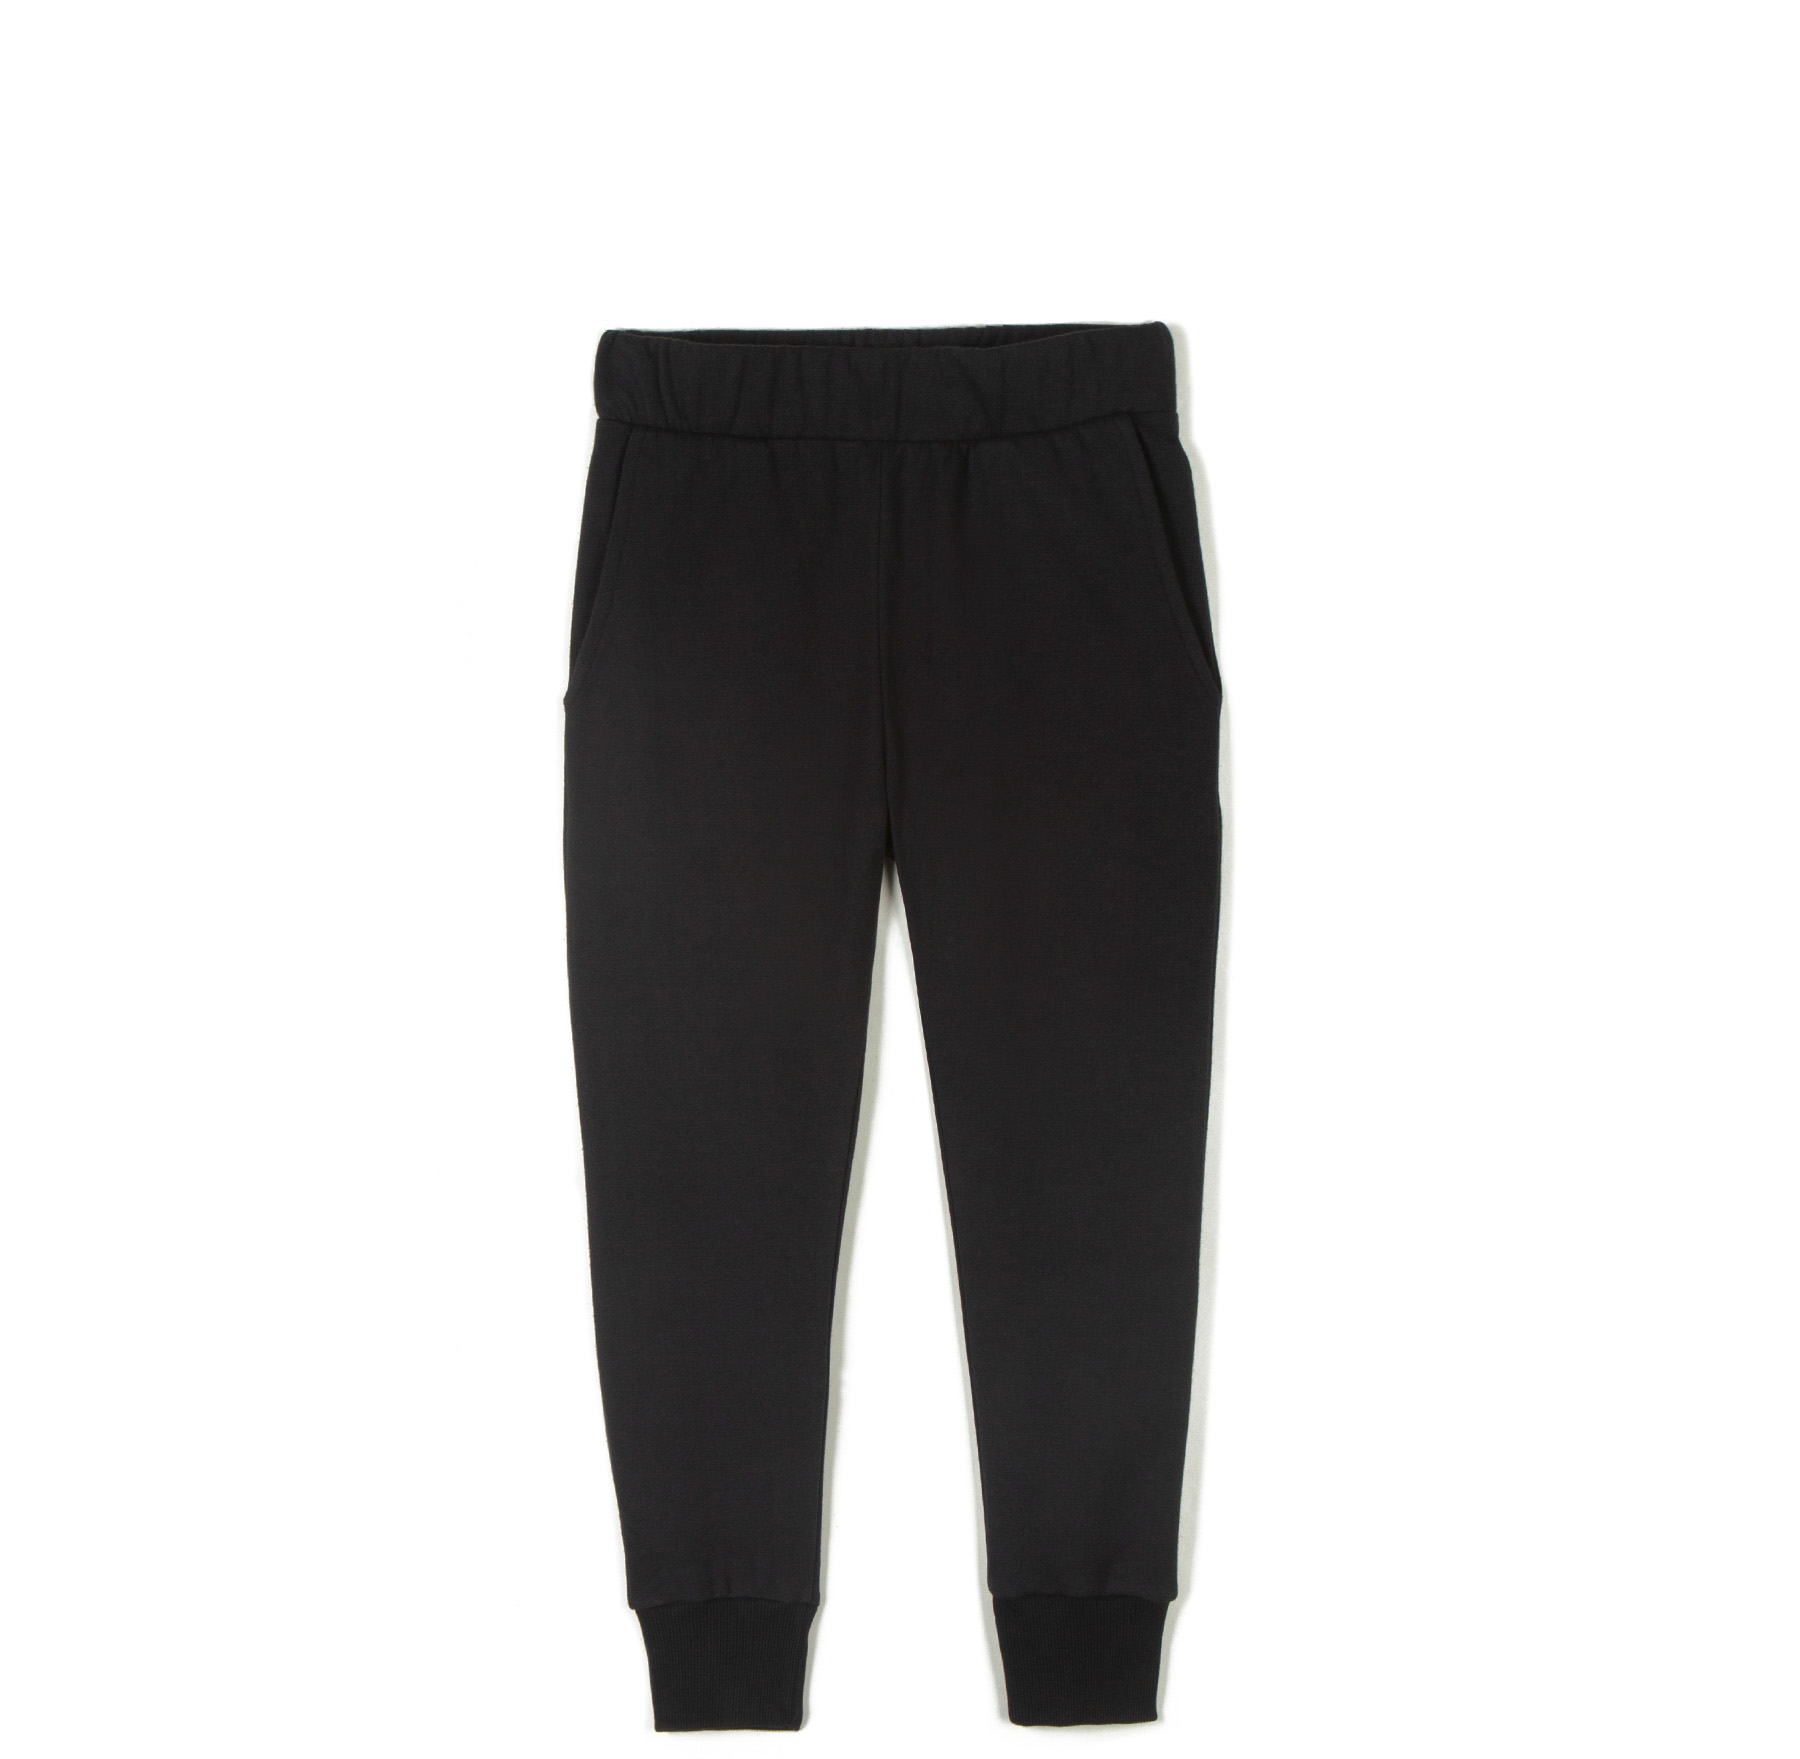 wolf & rita amadeu black trousers